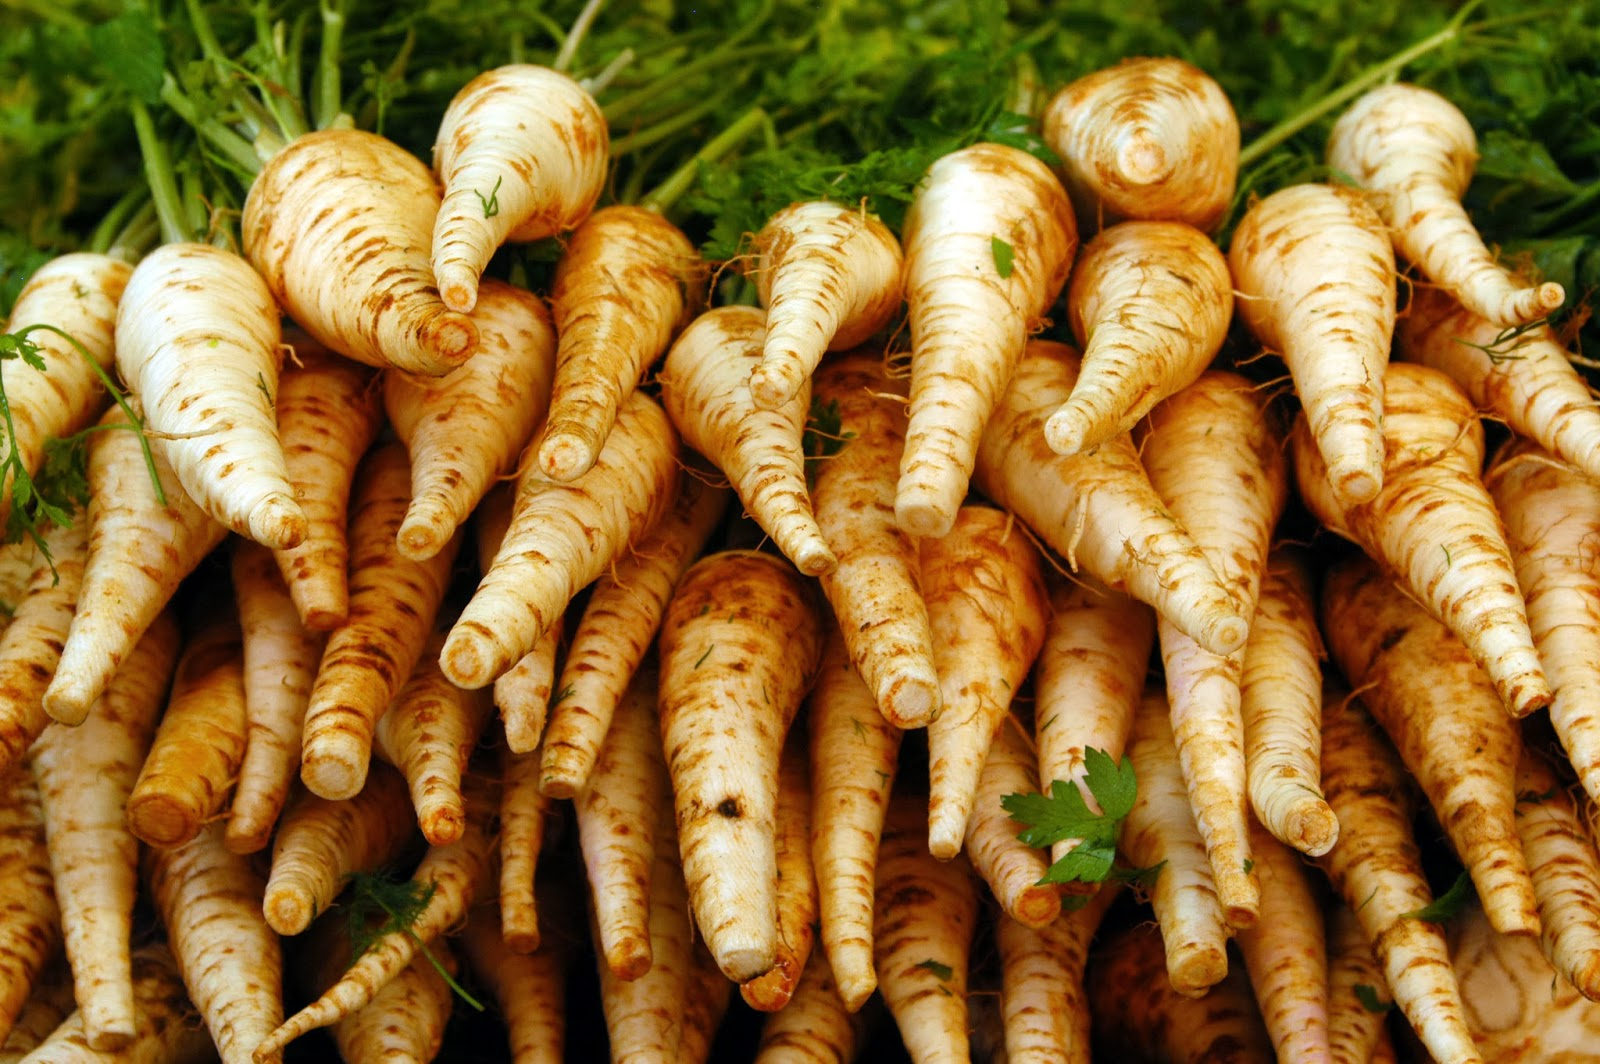 Parsnips are rich in Vitamin C and one of my favorite winter soup ingredients!